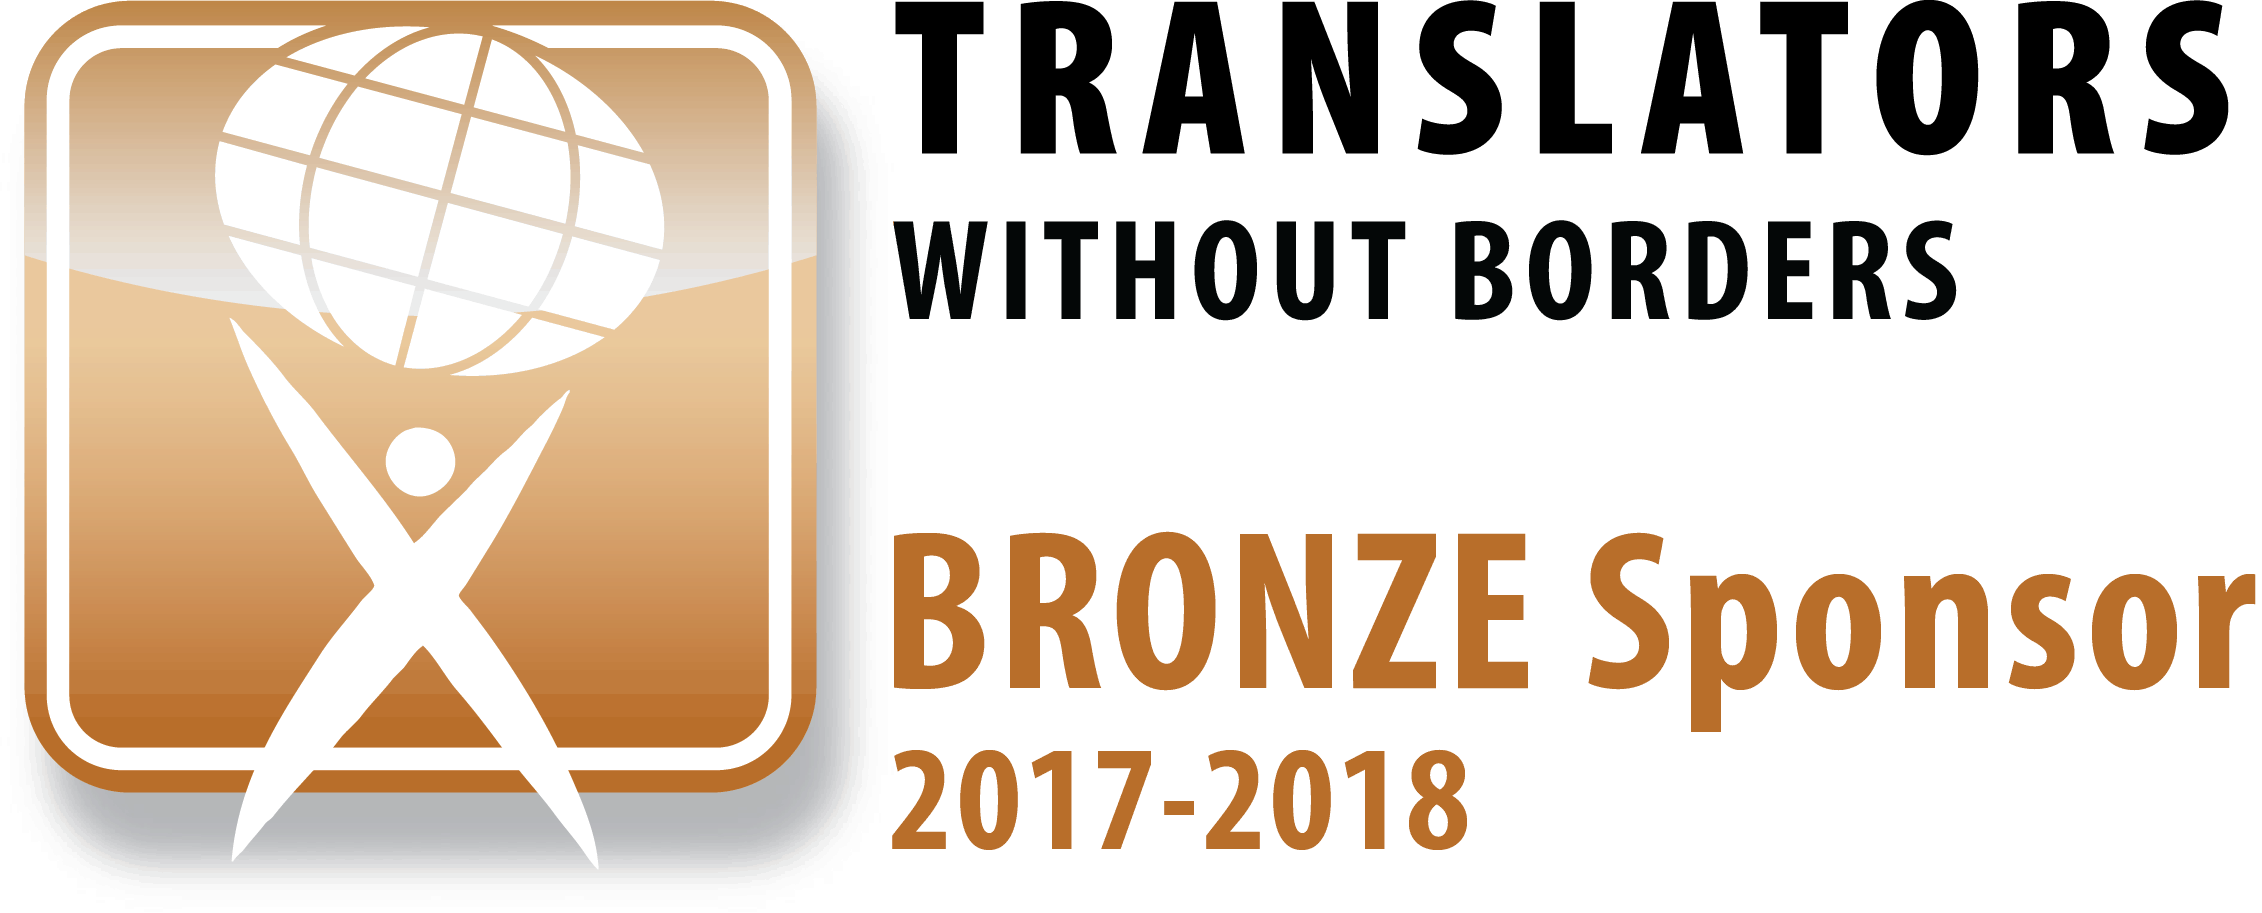 We support Translators without Borders – because language matters.